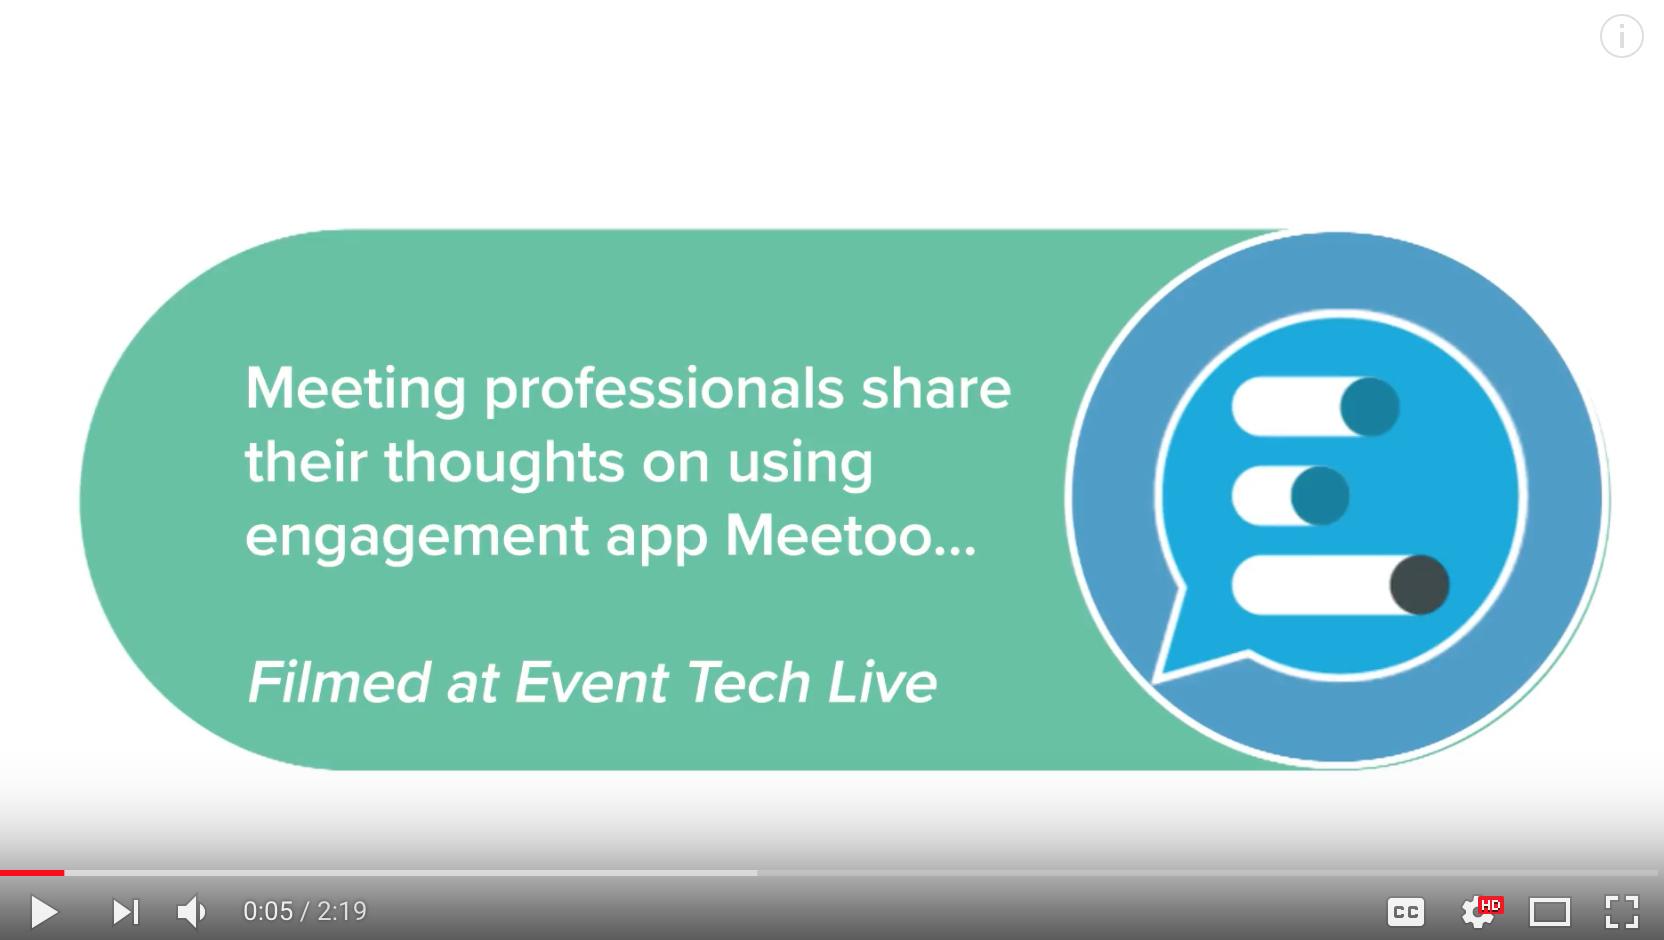 Meeting professionals share their thoughts on using Meetoo…